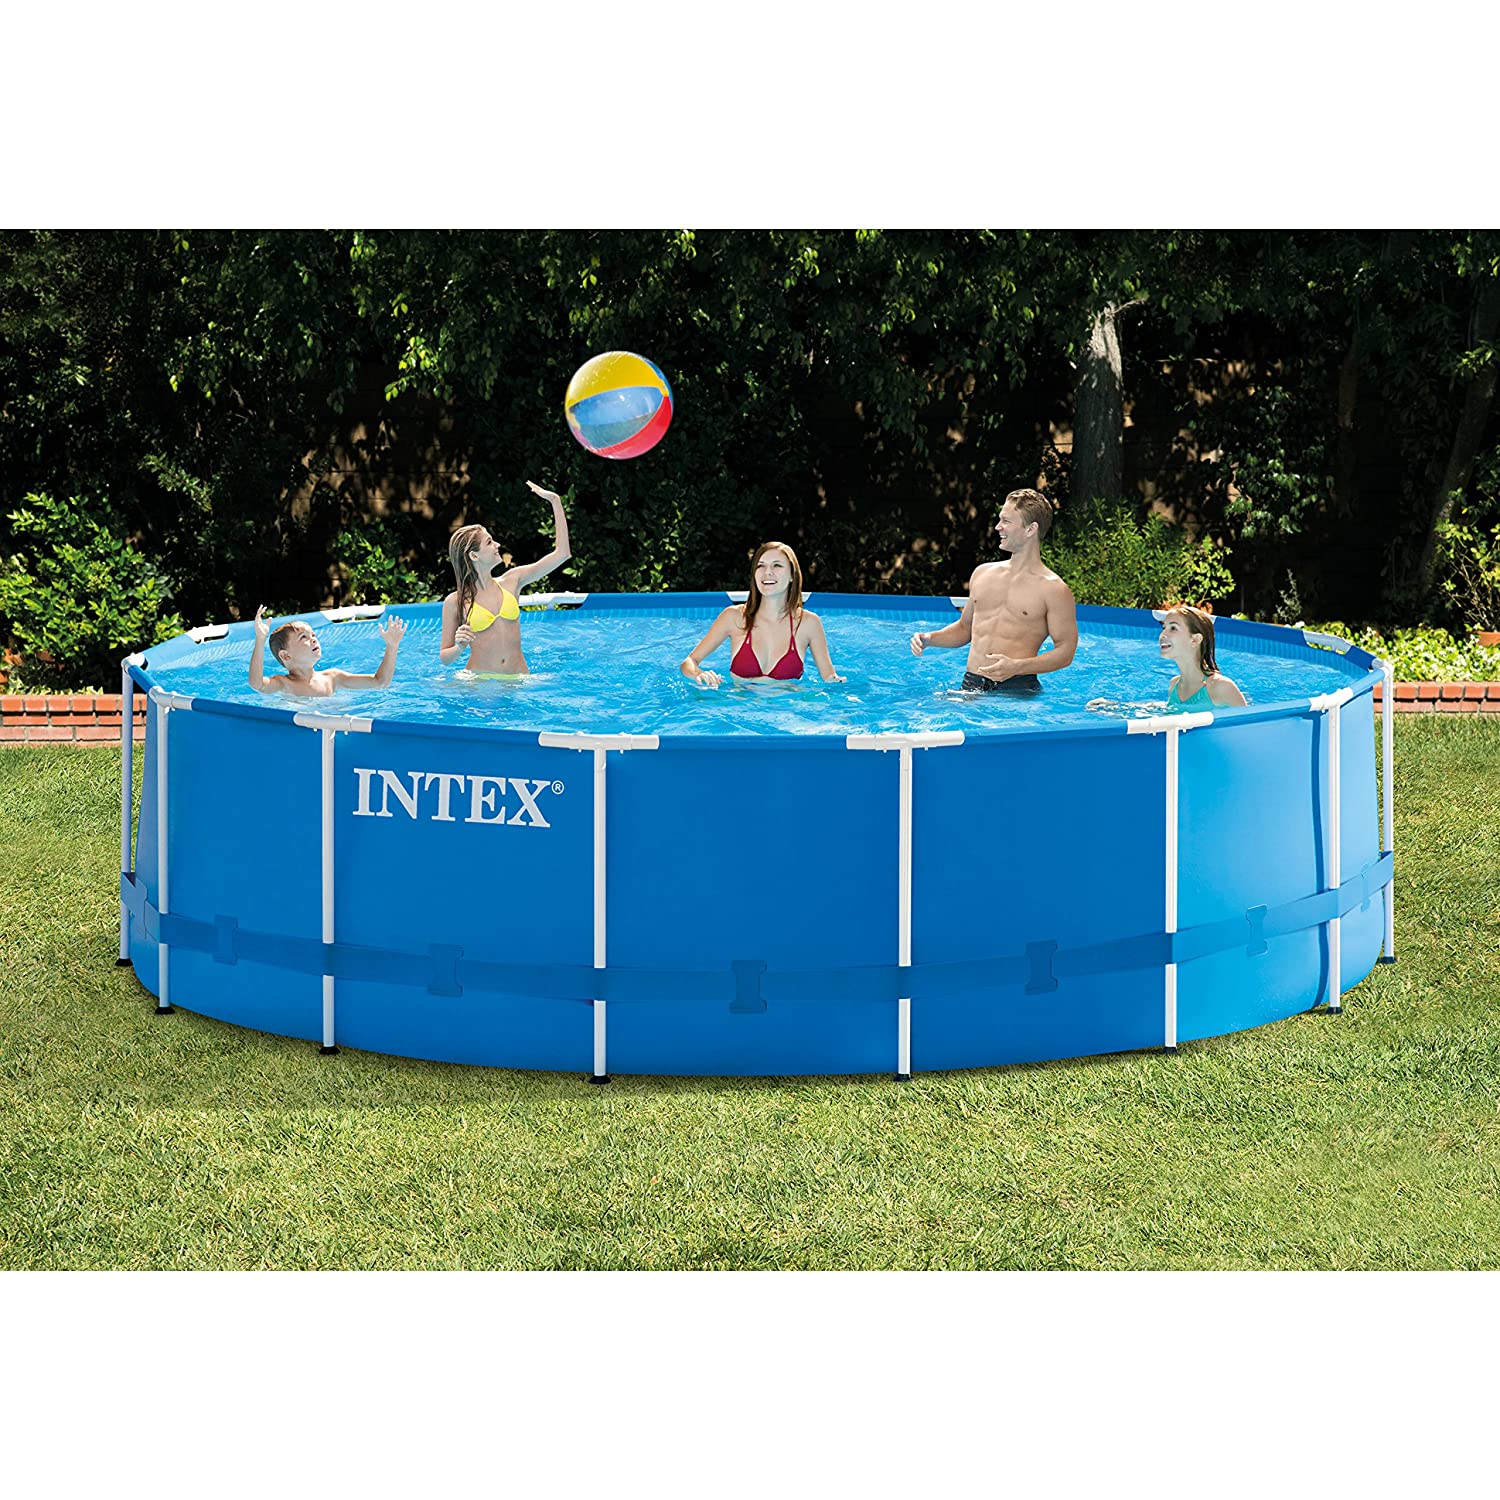 Intex 18ft X 48in Metal Frame Pool Set